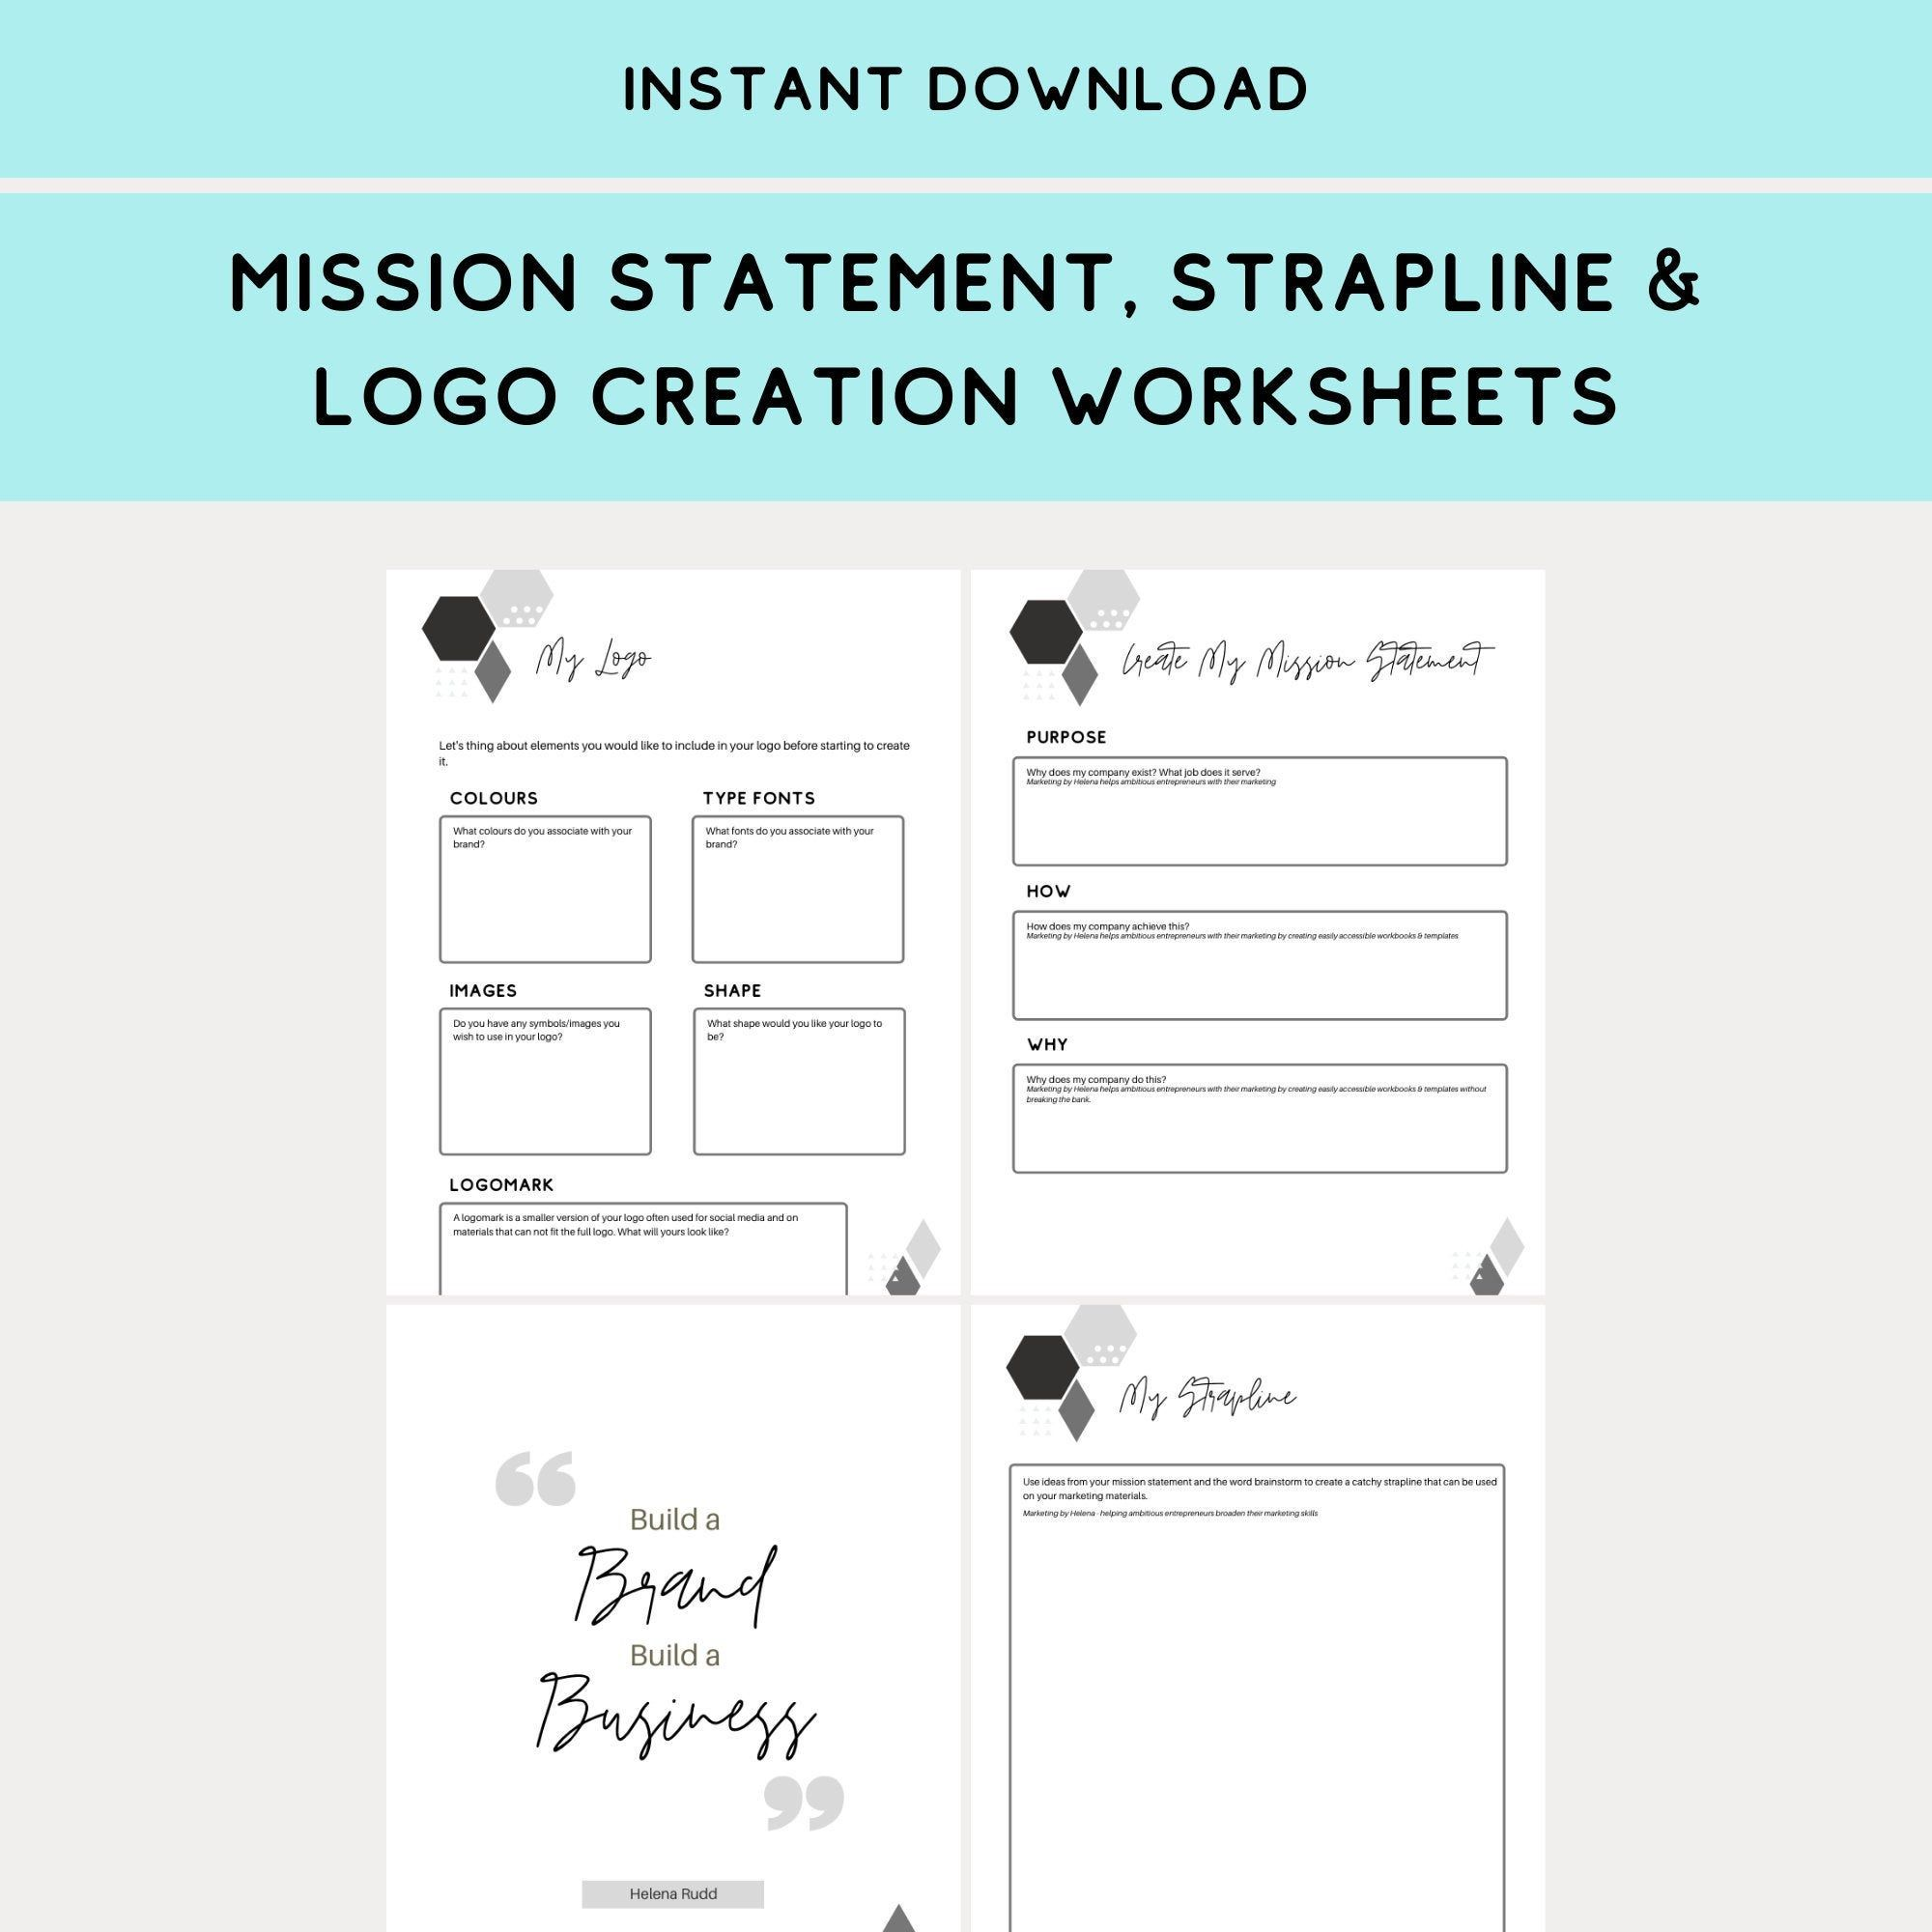 Mission Statement Strapline Amp Logo Creation Worksheets